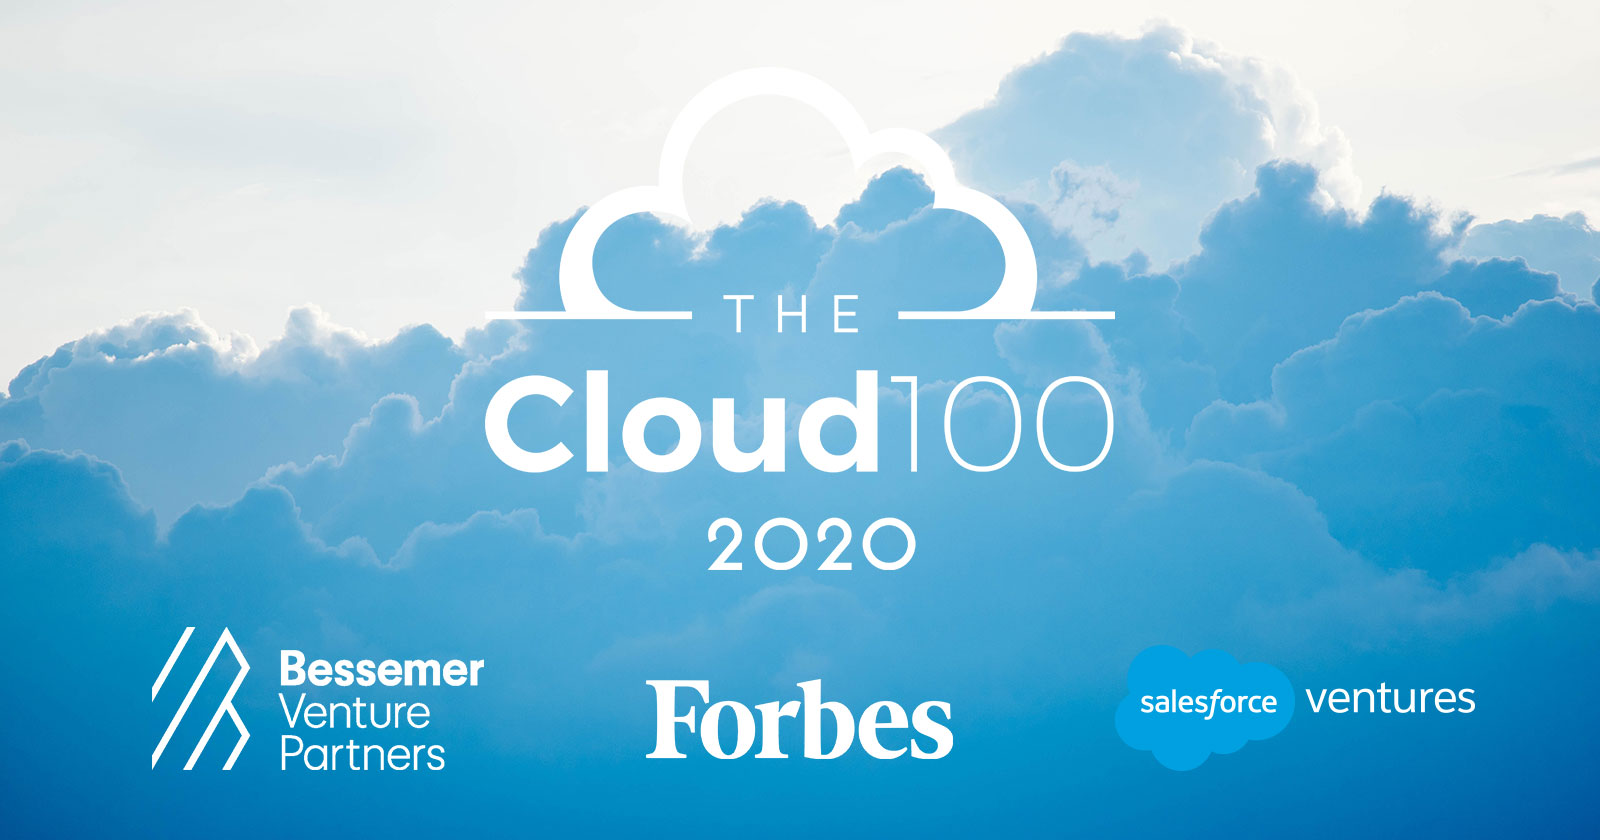 The Cloud 100 2020 Bessemer Venture Partners Forbes Salesforce Ventures